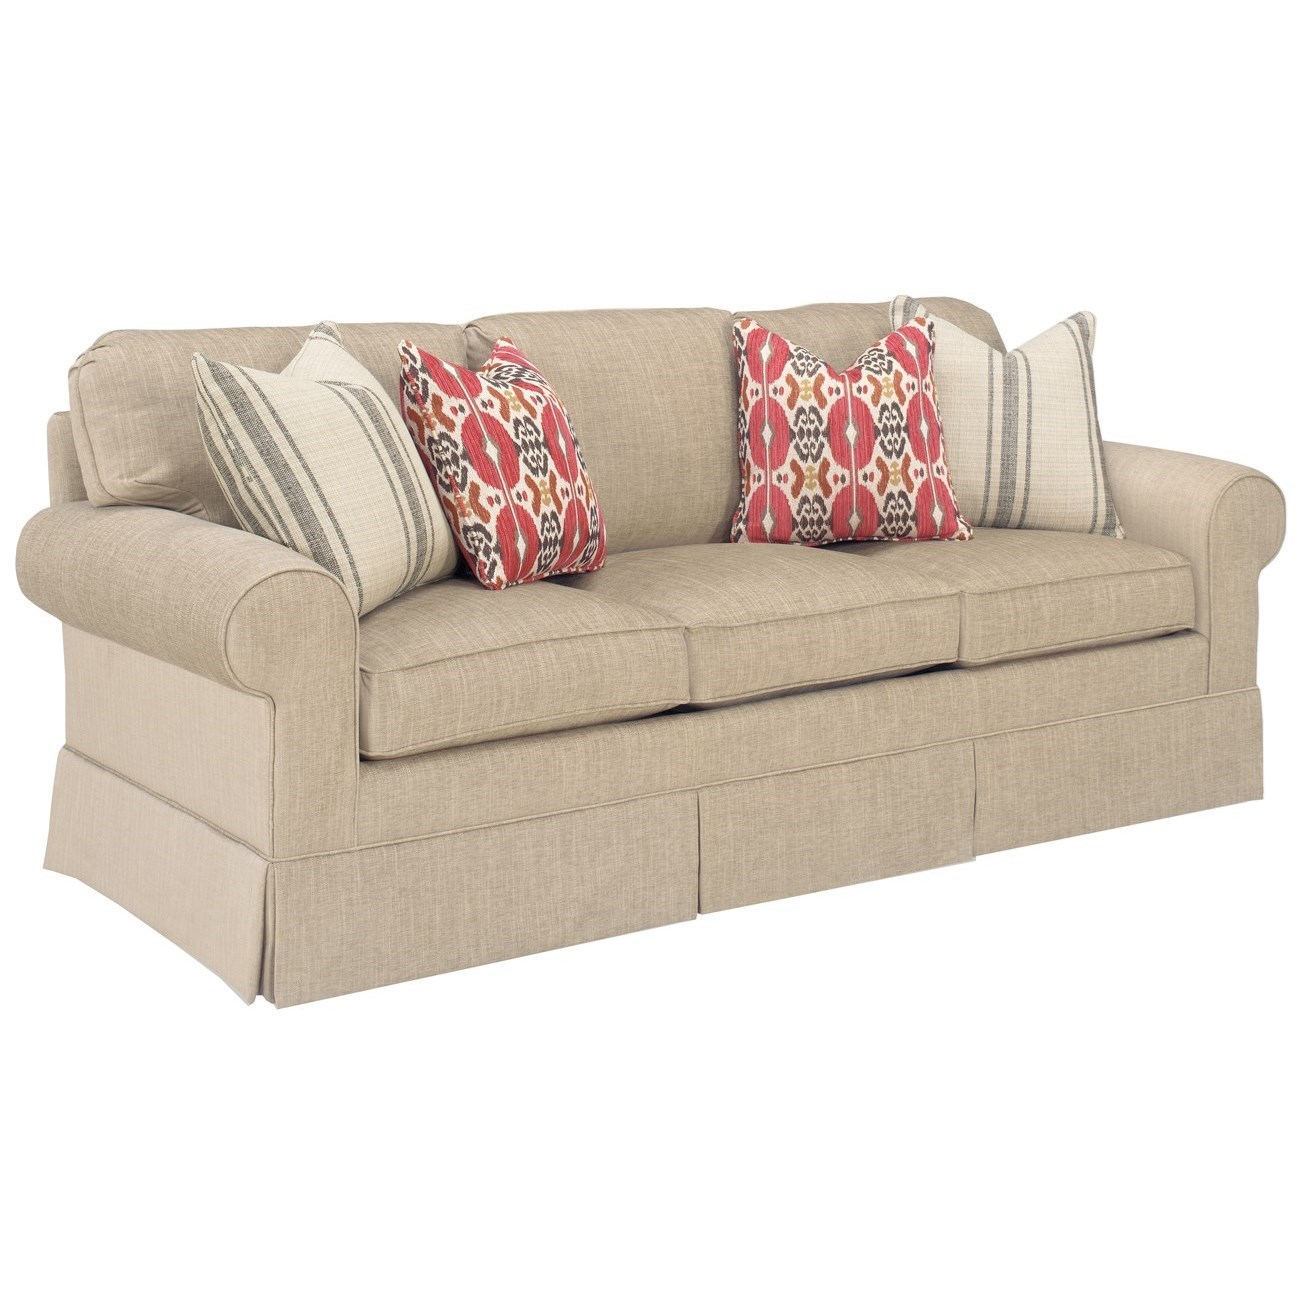 Etonnant Lexington Personal Design SeriesBedford Customizable Sleeper Sofa ...